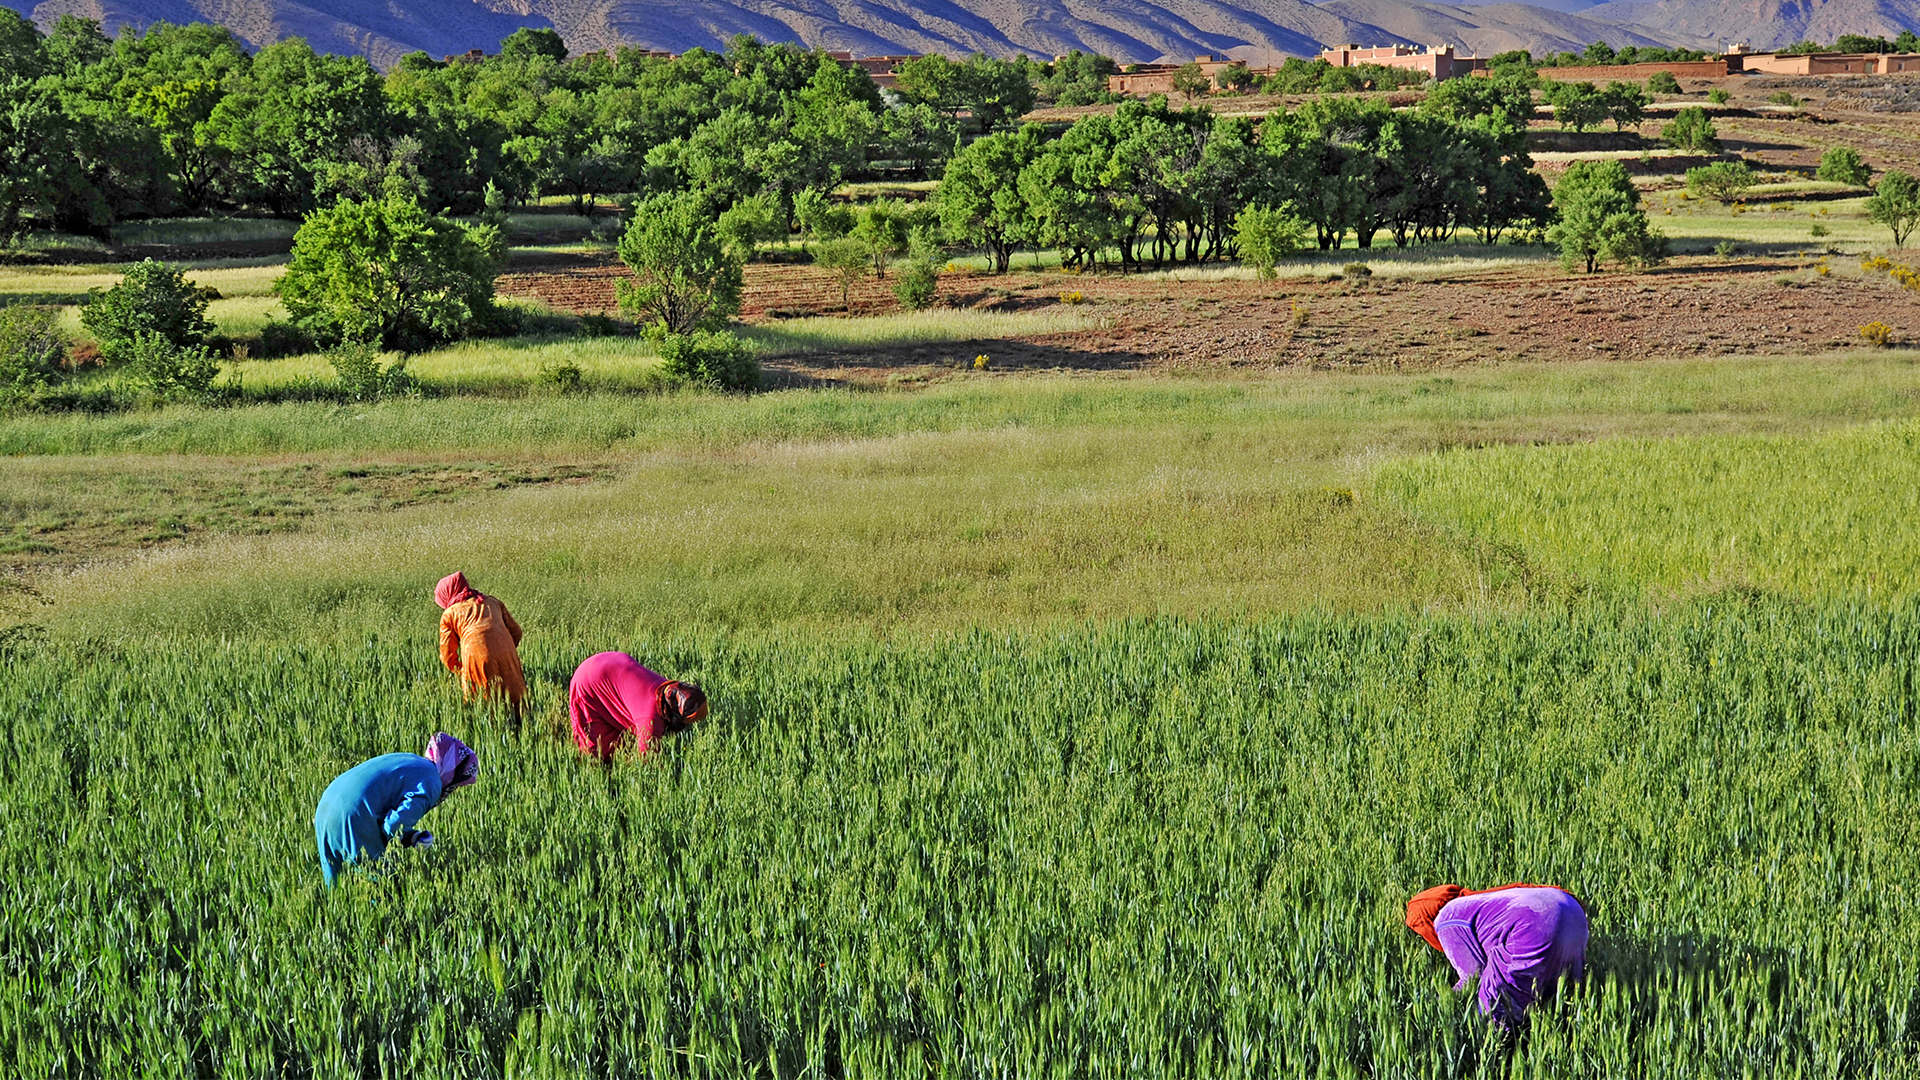 Women farming the fields in Morocco